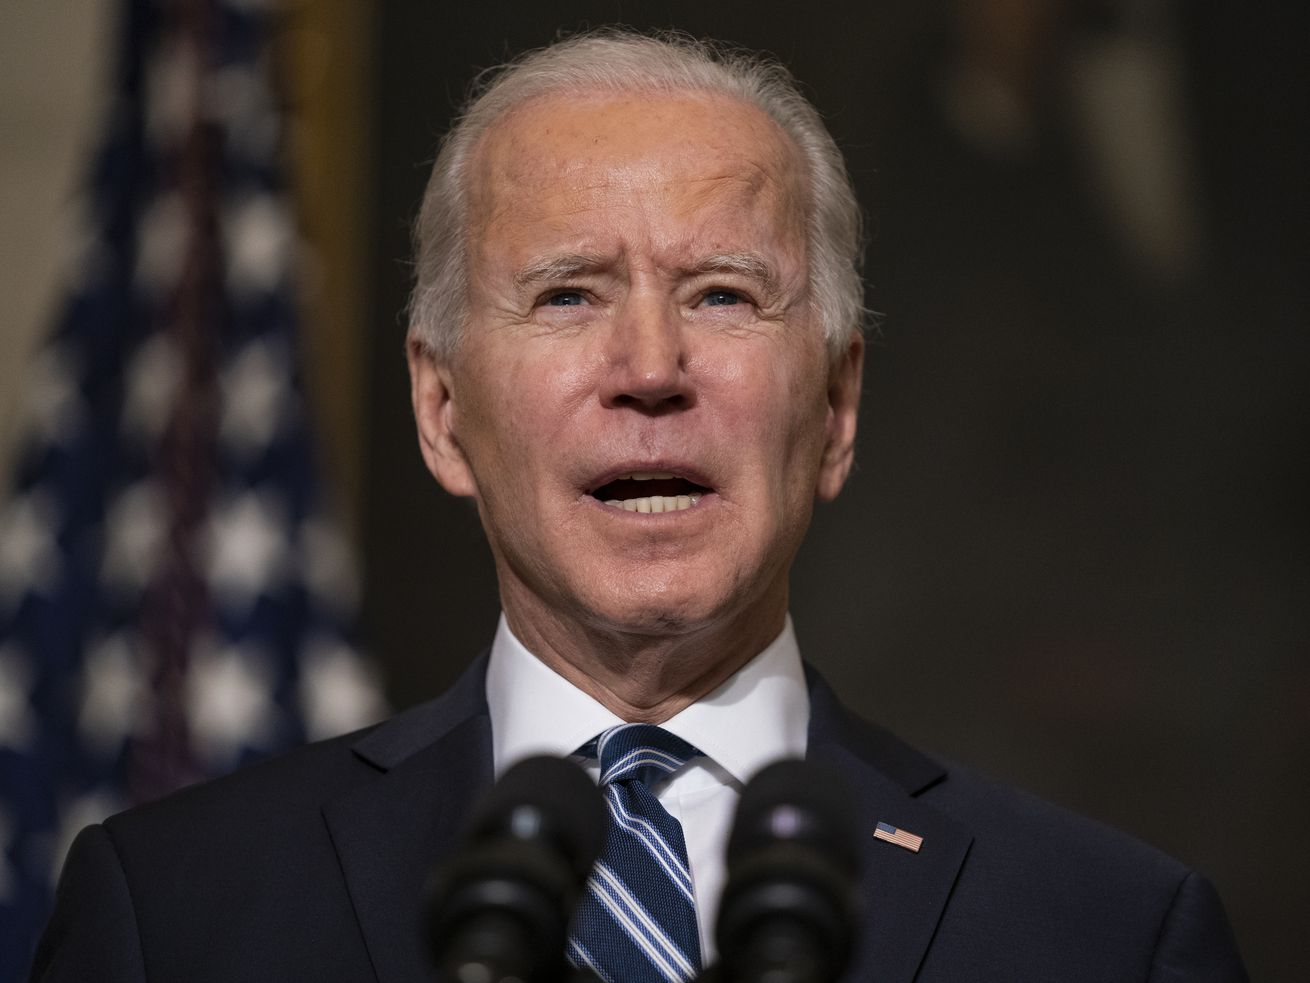 In this Jan. 27, 2021, file photo President Joe Biden delivers remarks on climate change and green jobs, in the State Dining Room of the White House in Washington.